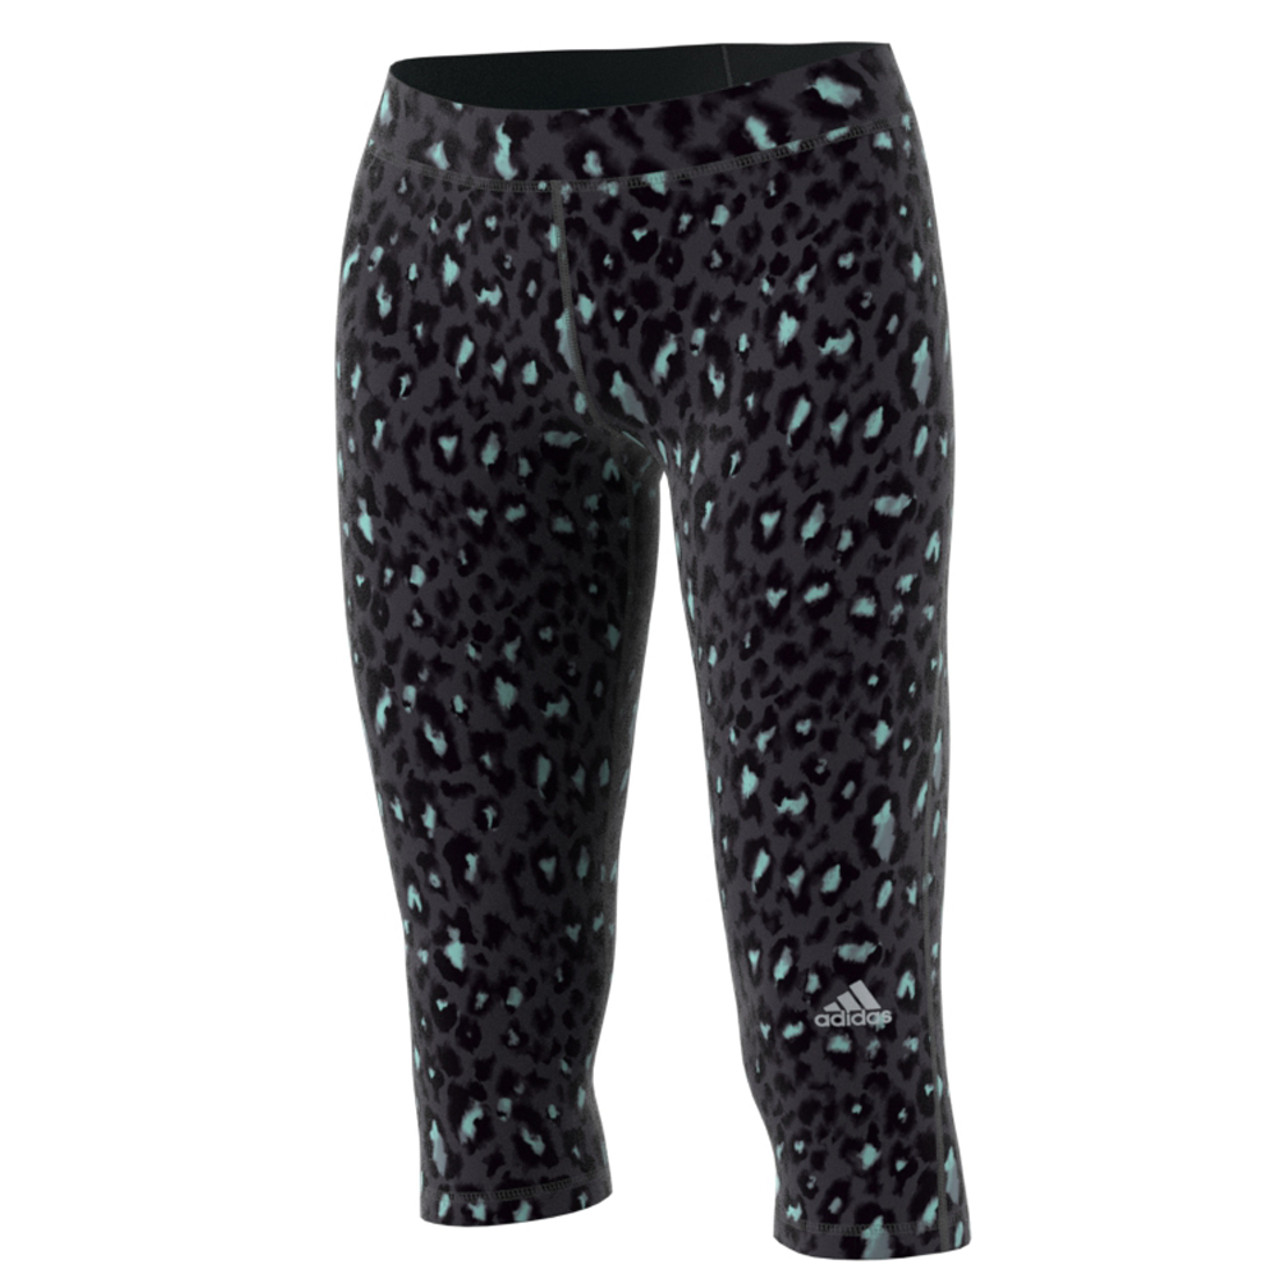 0799ba565be3f Adidas Women's Techfit Stadium 3/4 Capri Tights Black Print - Shop now @  Shoolu